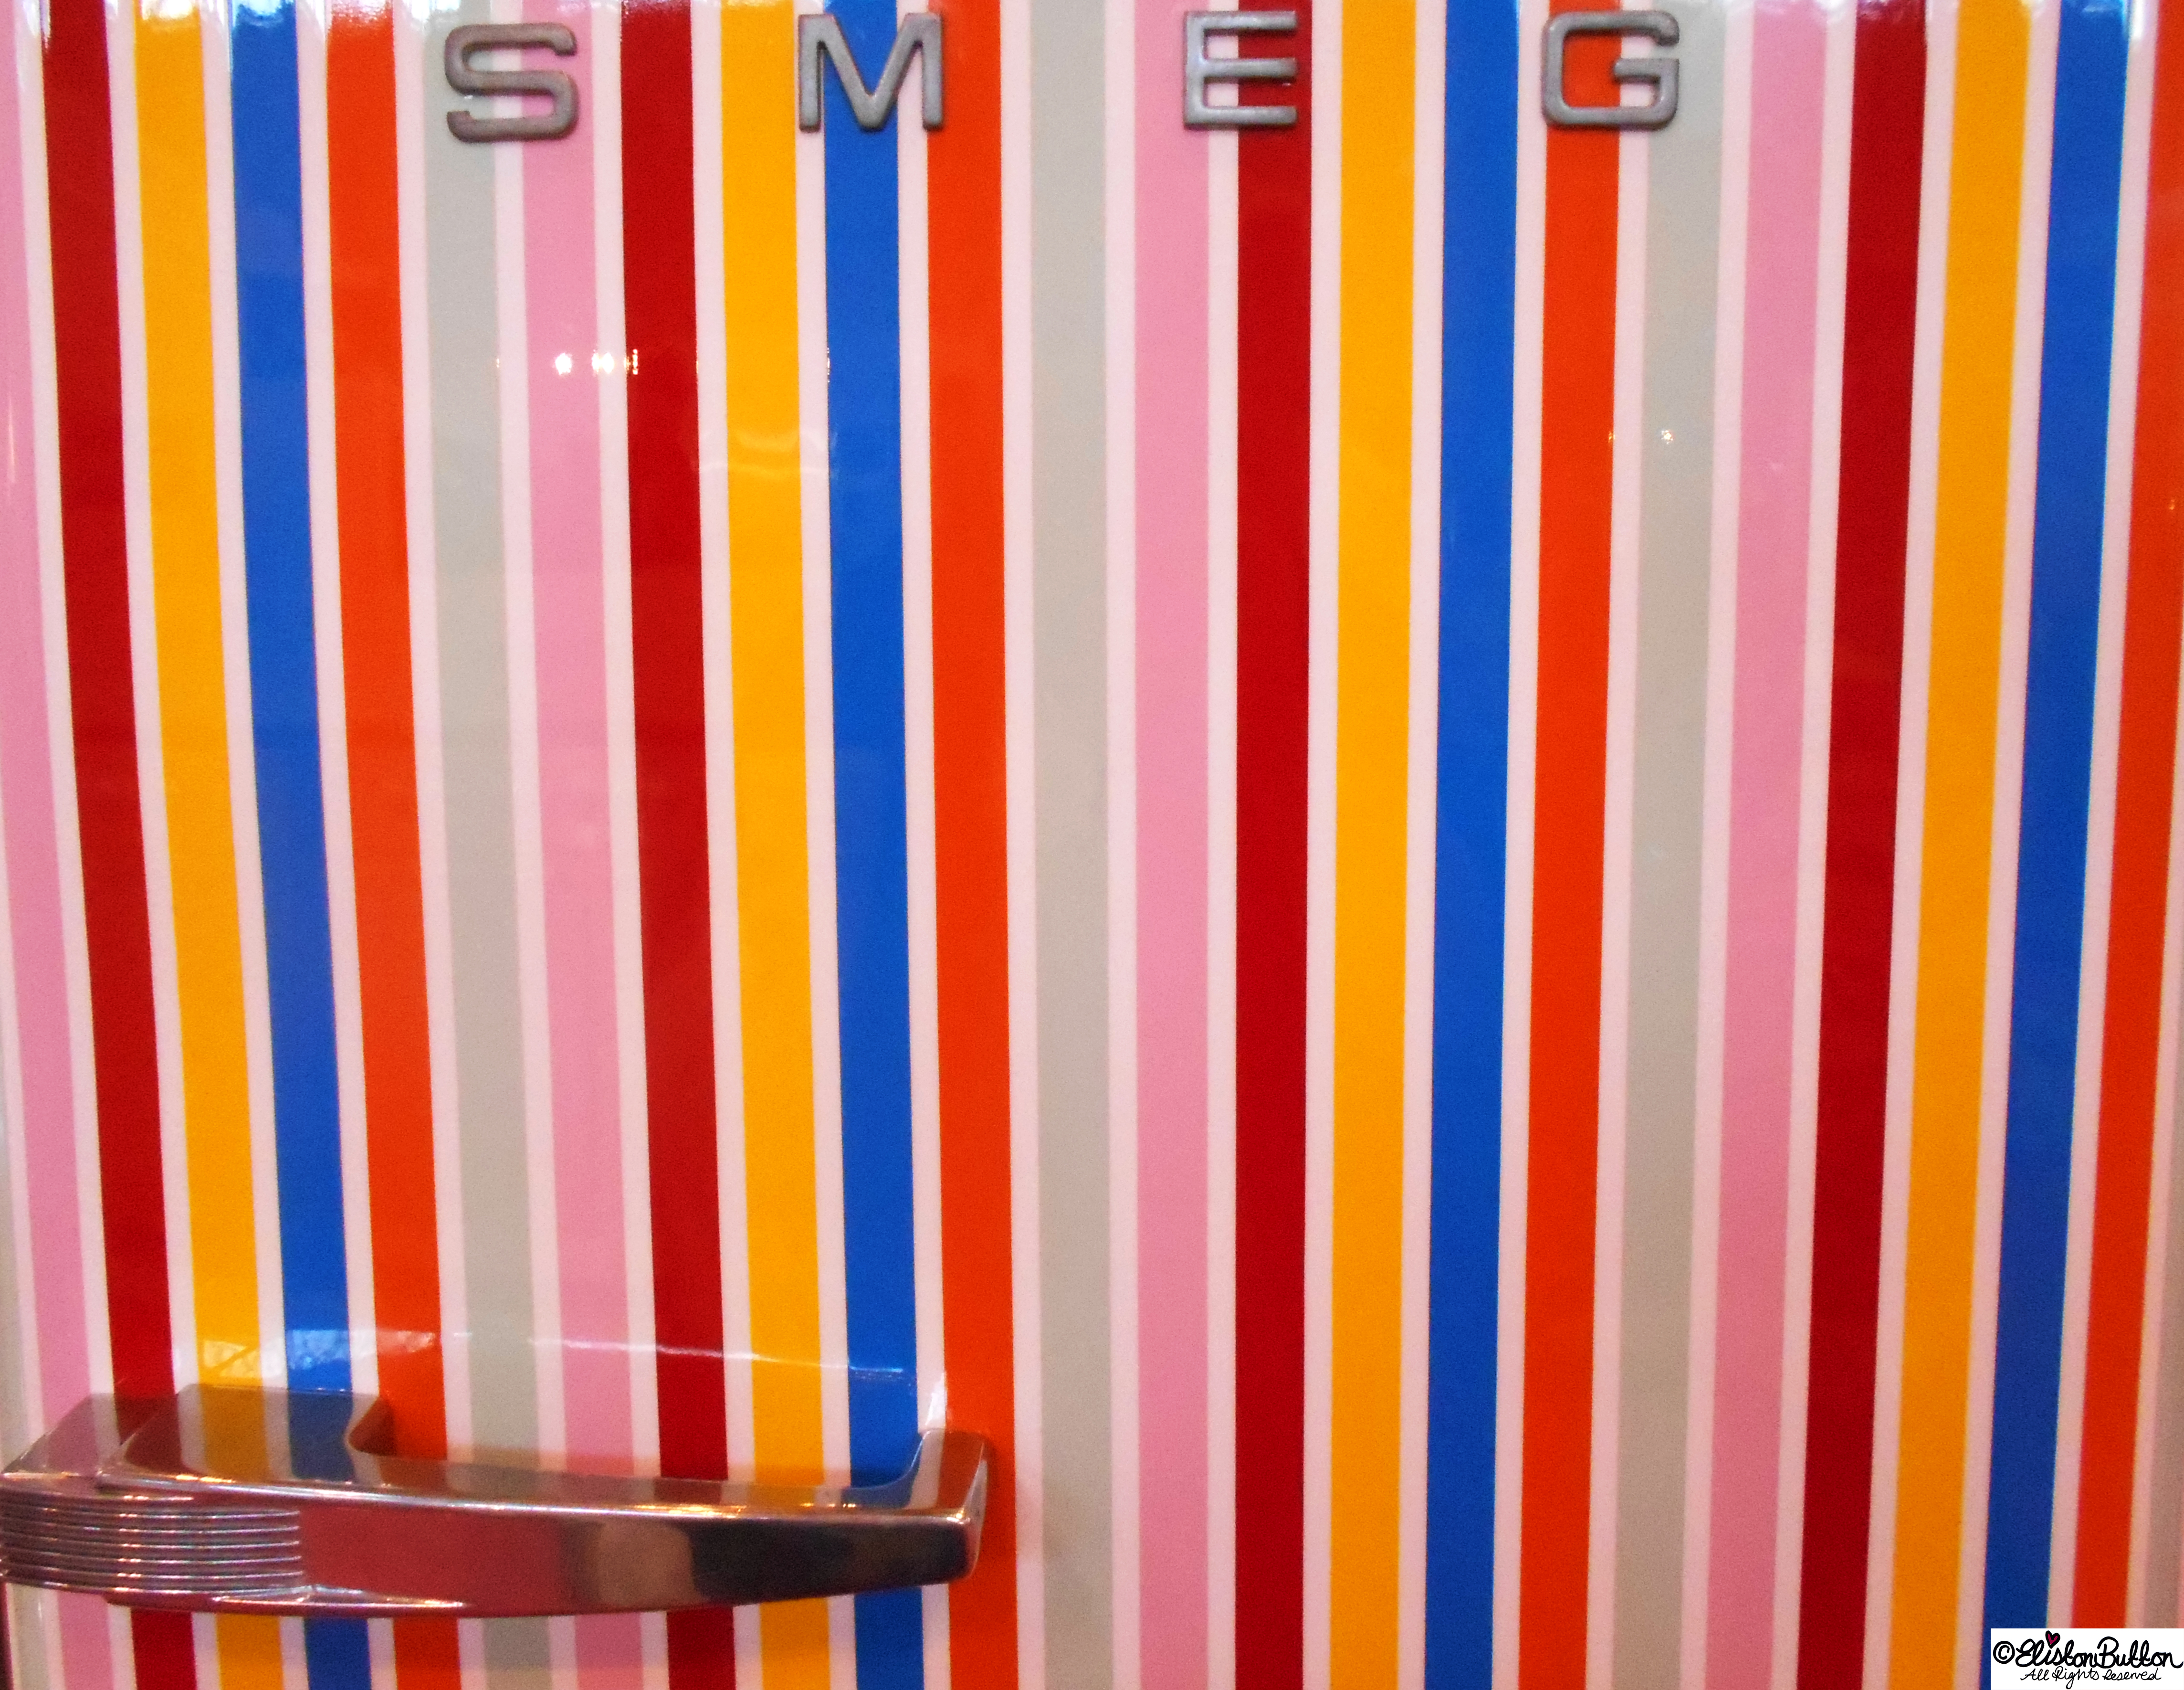 Smeg Stripy Fridge - Grand Designs Live - Part One at www.elistonbutton.com - Eliston Button - That Crafty Kid – Art, Design, Craft & Adventure.